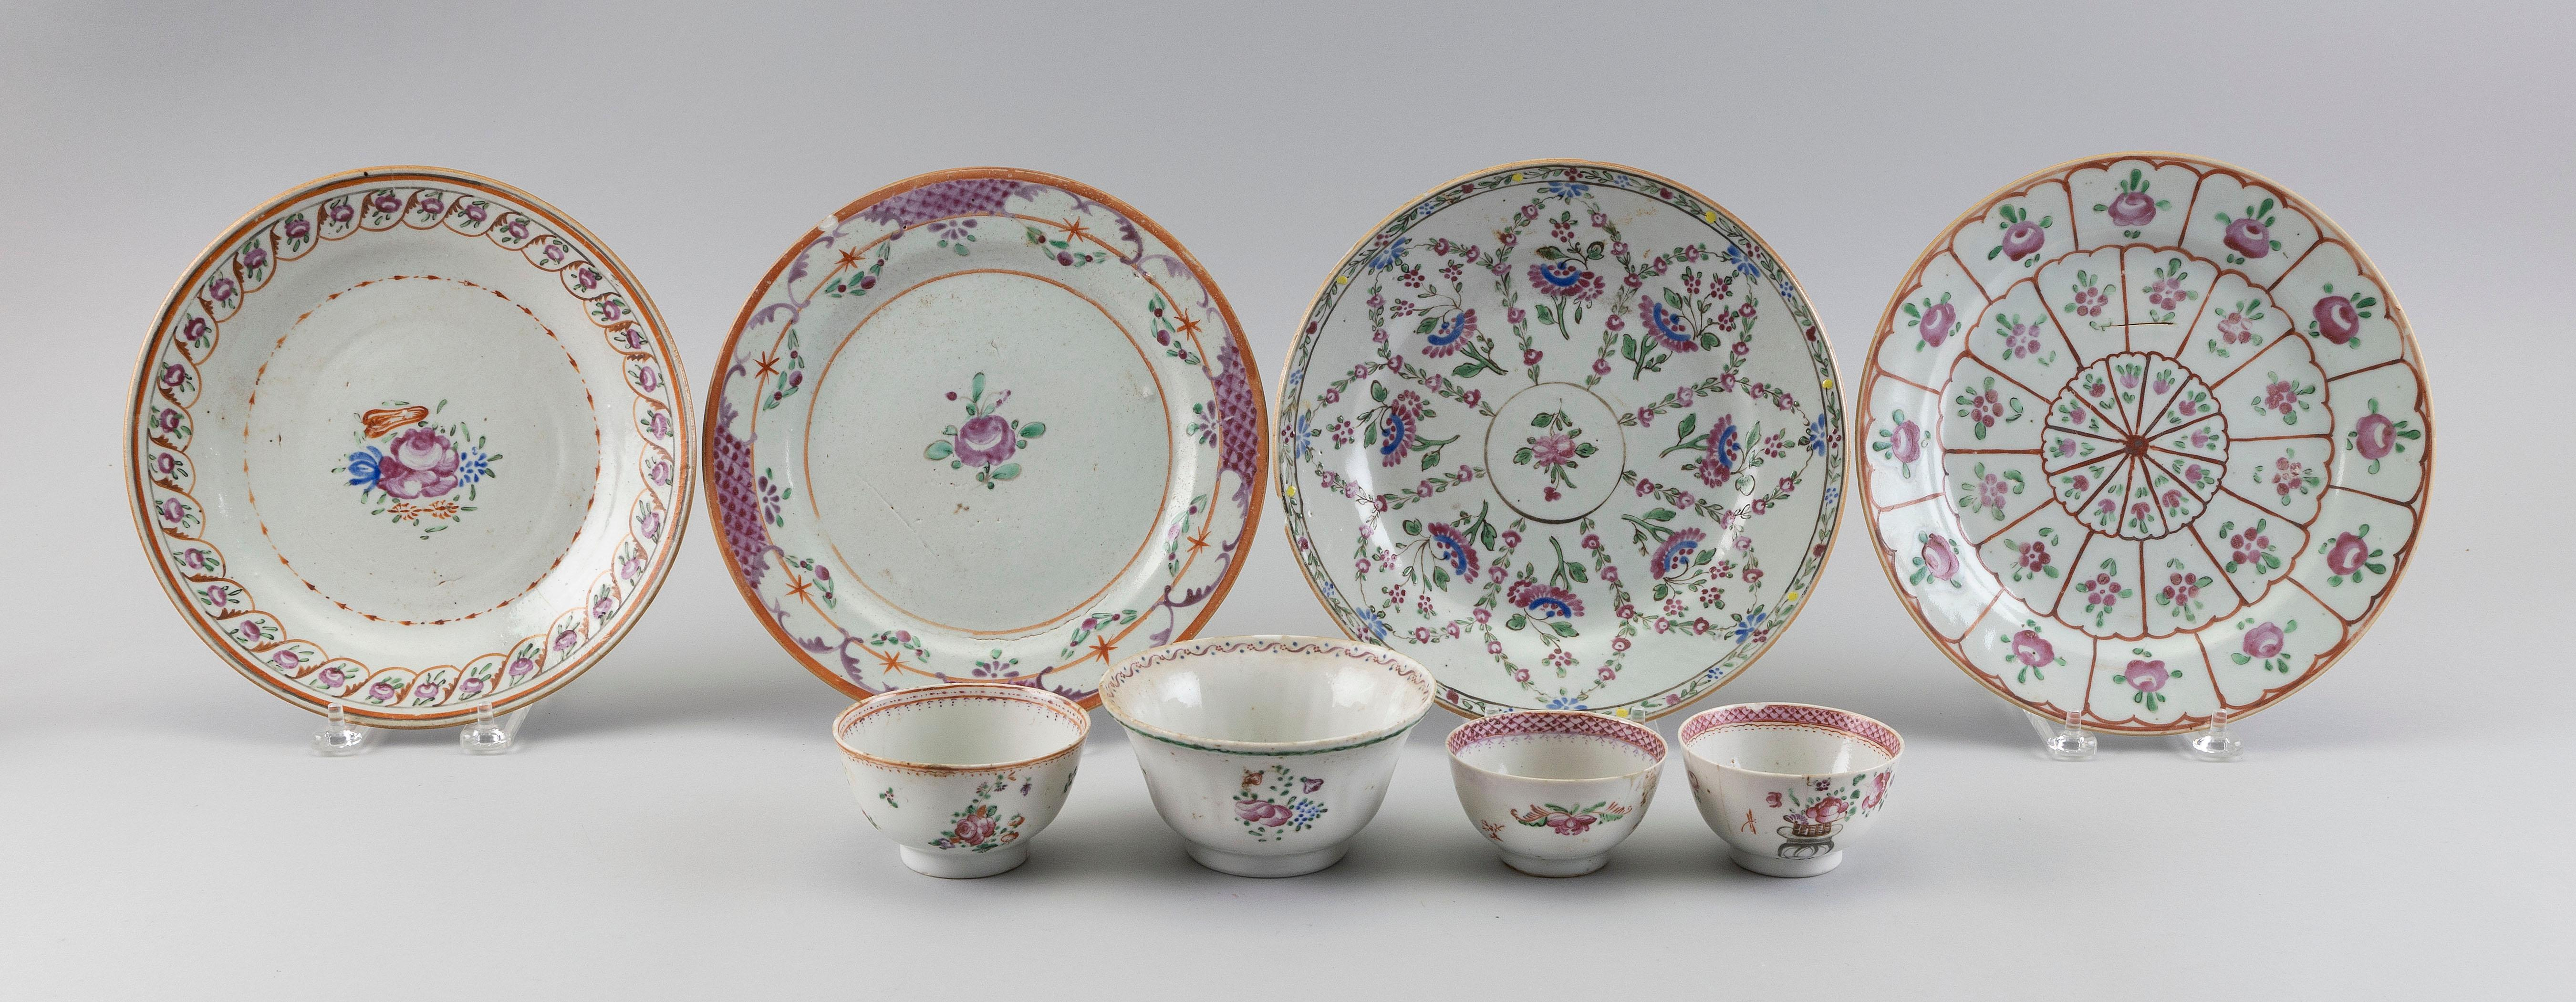 EIGHT PIECES OF CHINESE EXPORT FAMILLE ROSE PORCELAIN 19th Century